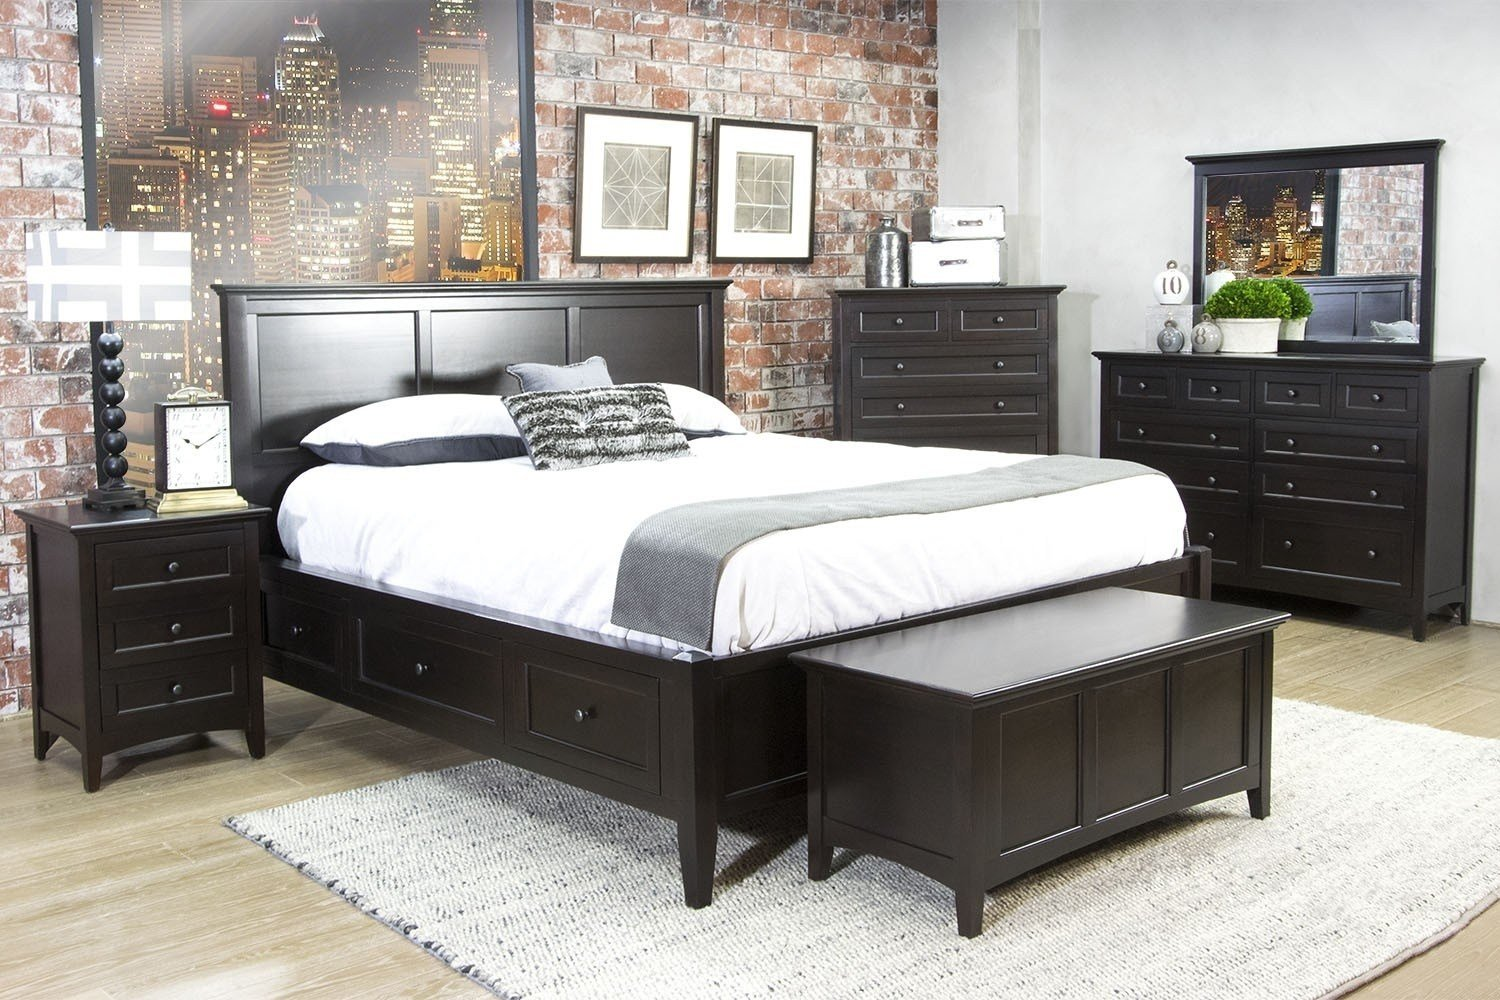 Best Ideal King Storage Bed Solution — The Home Redesign With Pictures